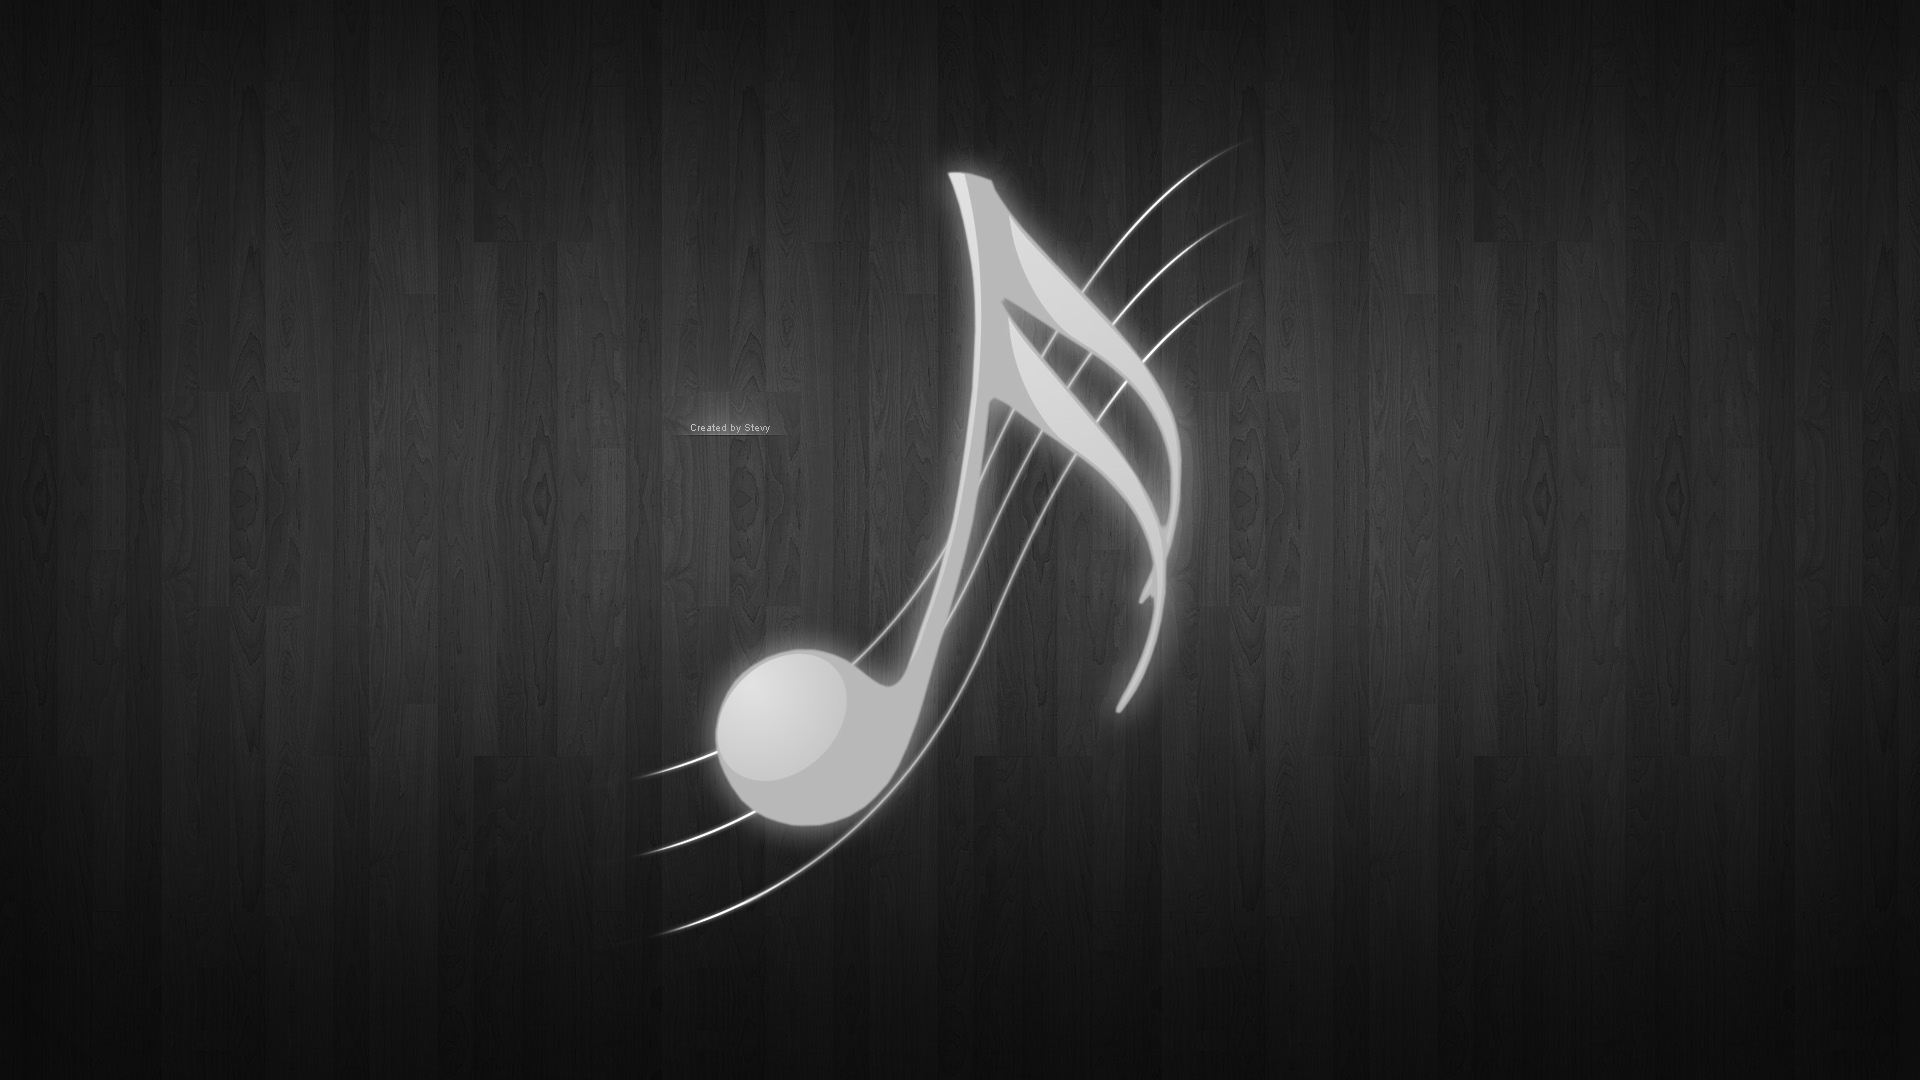 Hd wallpaper music 3d download for android mobile